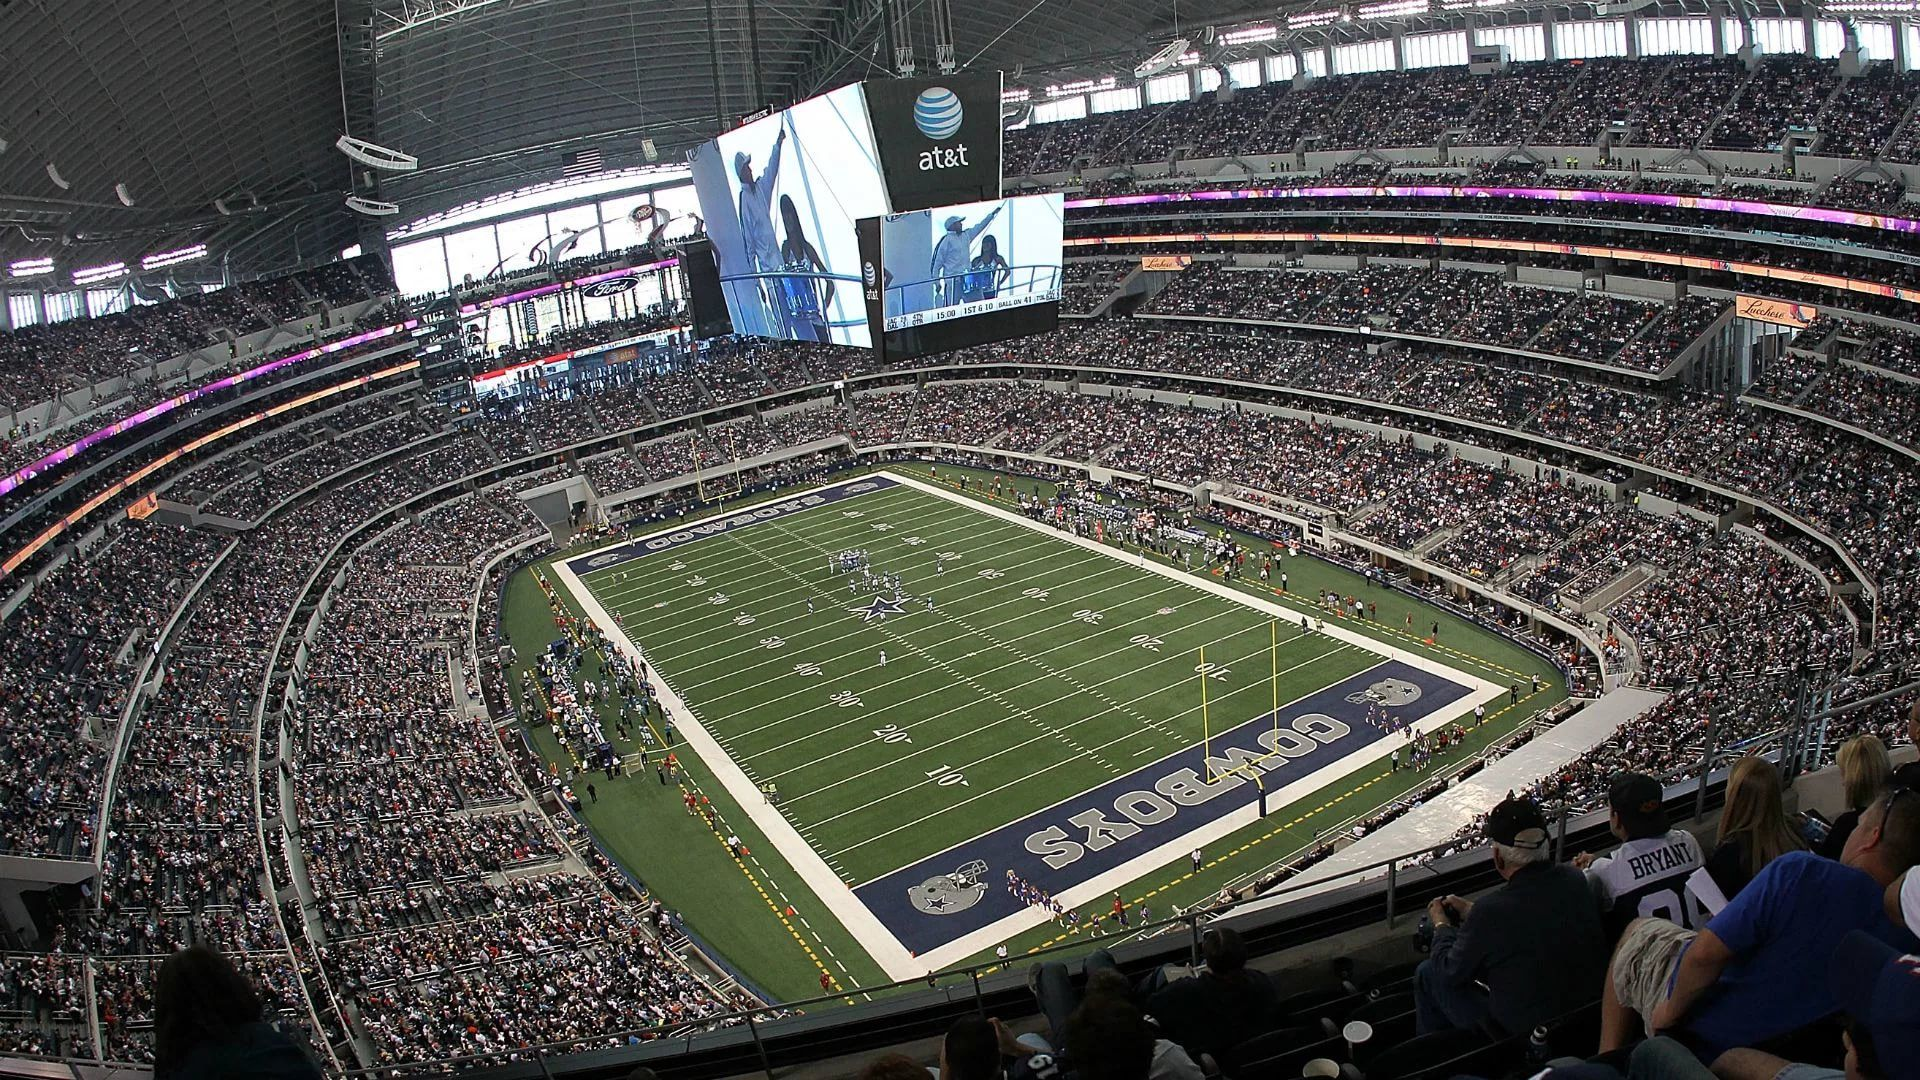 Cowboys Stadium download free wallpapers for pc in hd